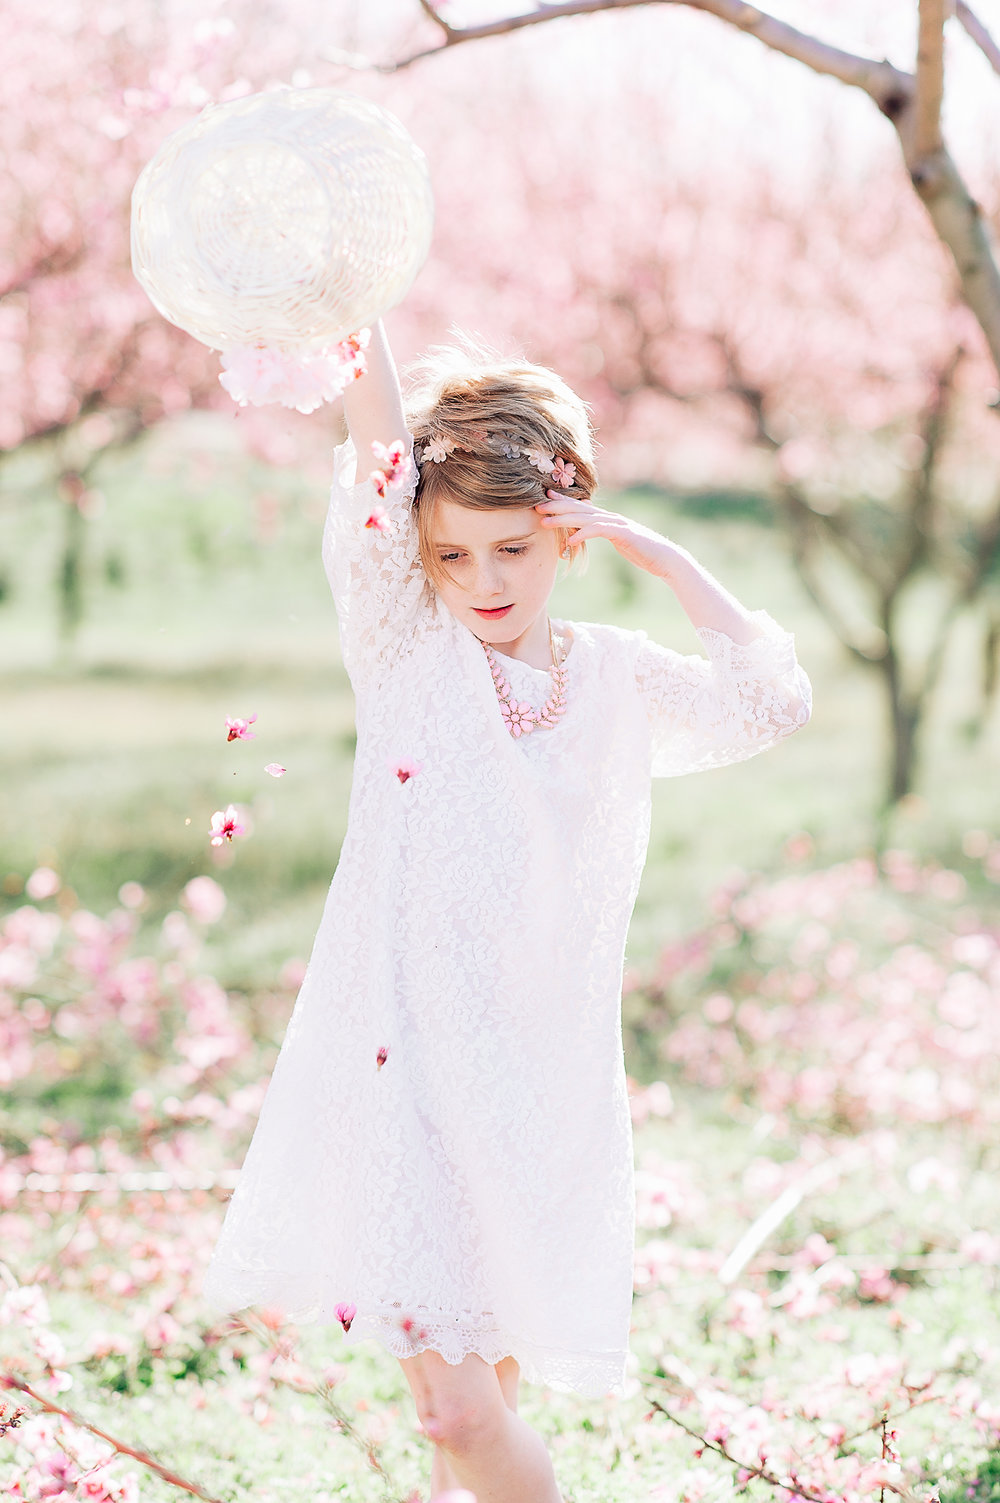 youseephotography_virginia_styledshoot_springwedding_blossoms  (43).jpg